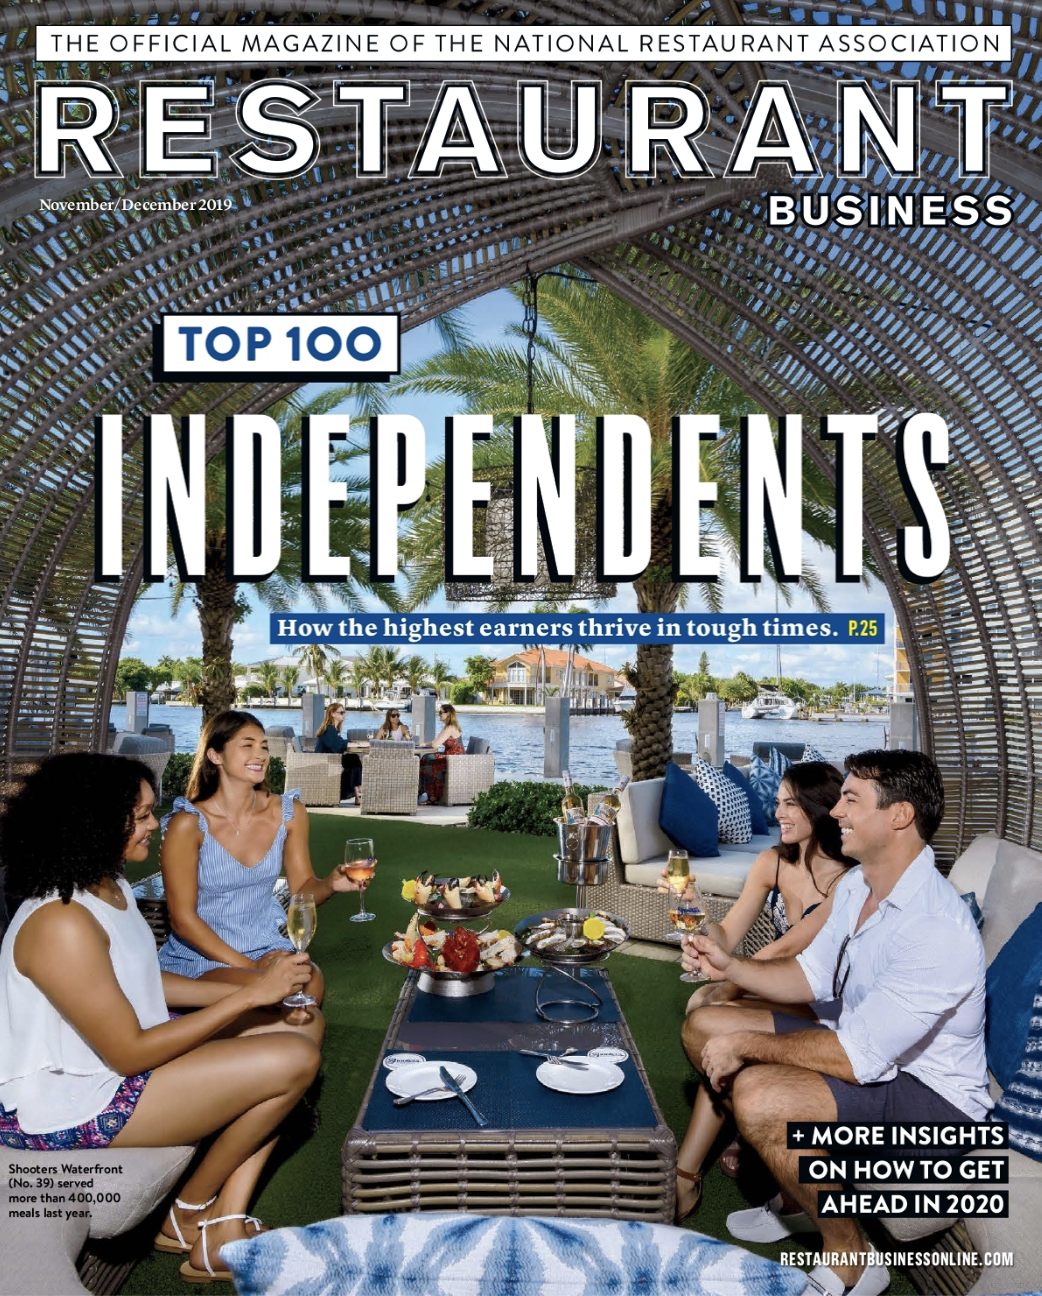 Restaurant Business Magazine November 2019 Issue